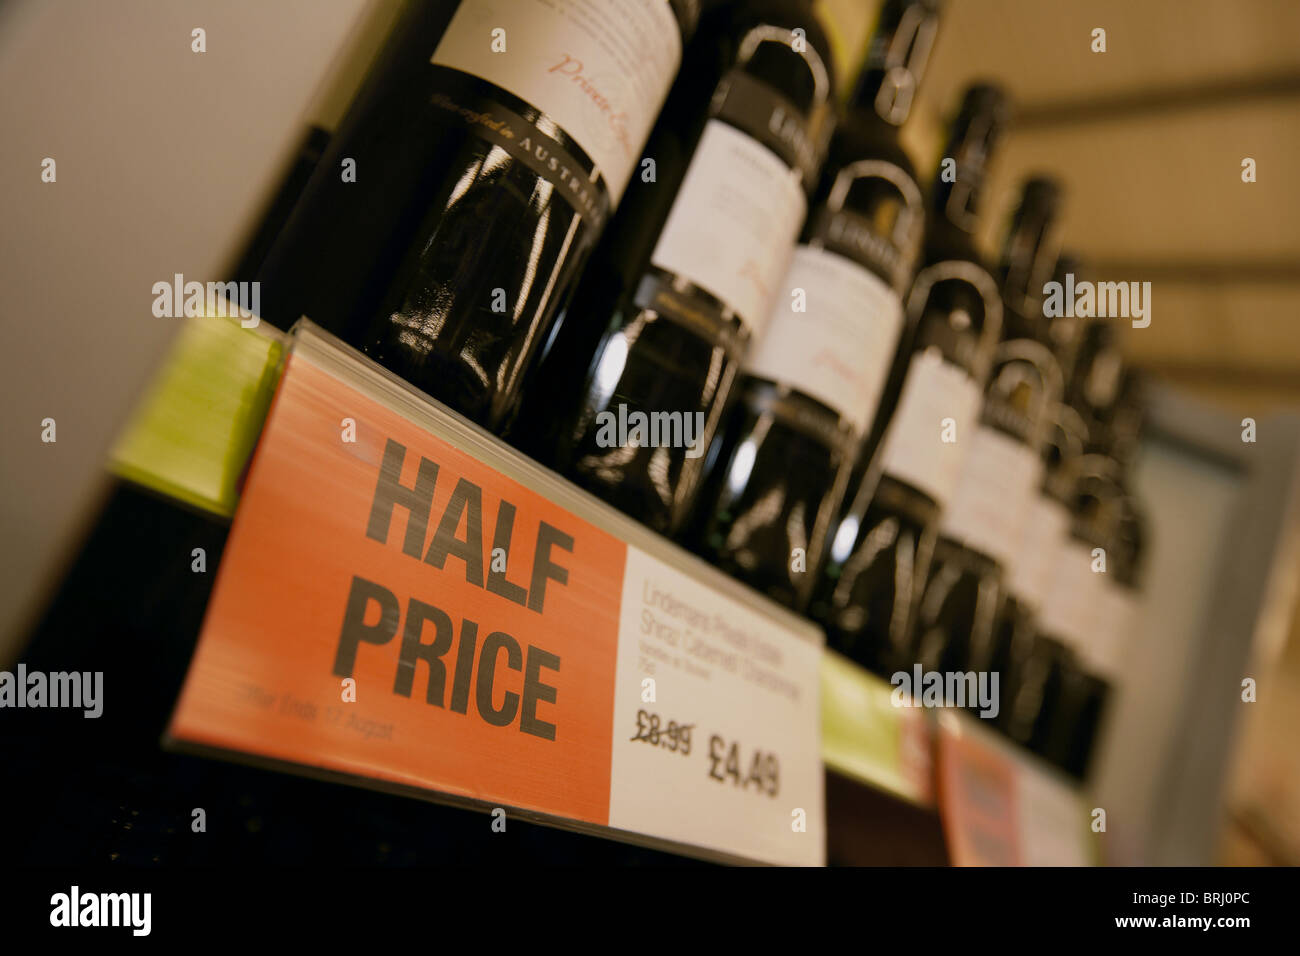 Cheap alcohol half price bottles of wine for sale in a supermarker, UK - Stock Image